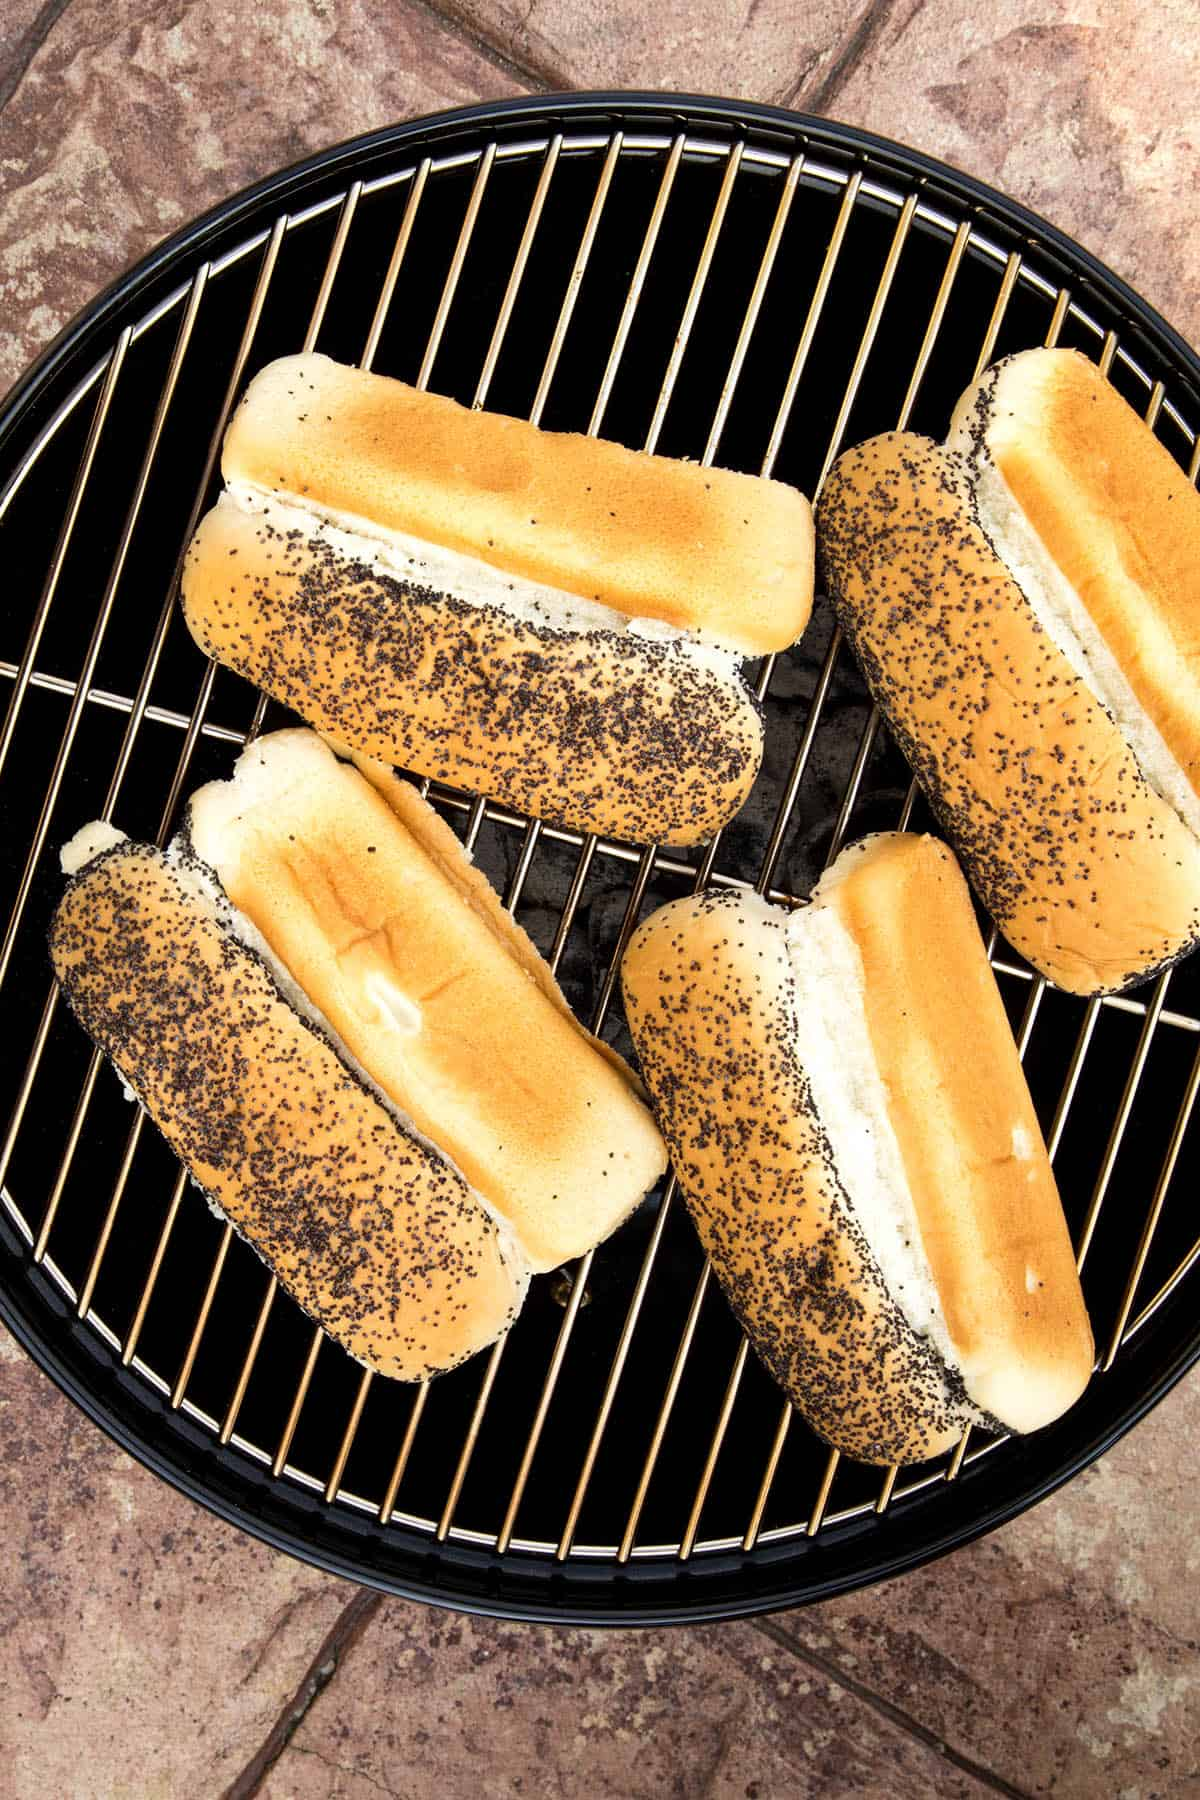 Poppy seed buns on the grill